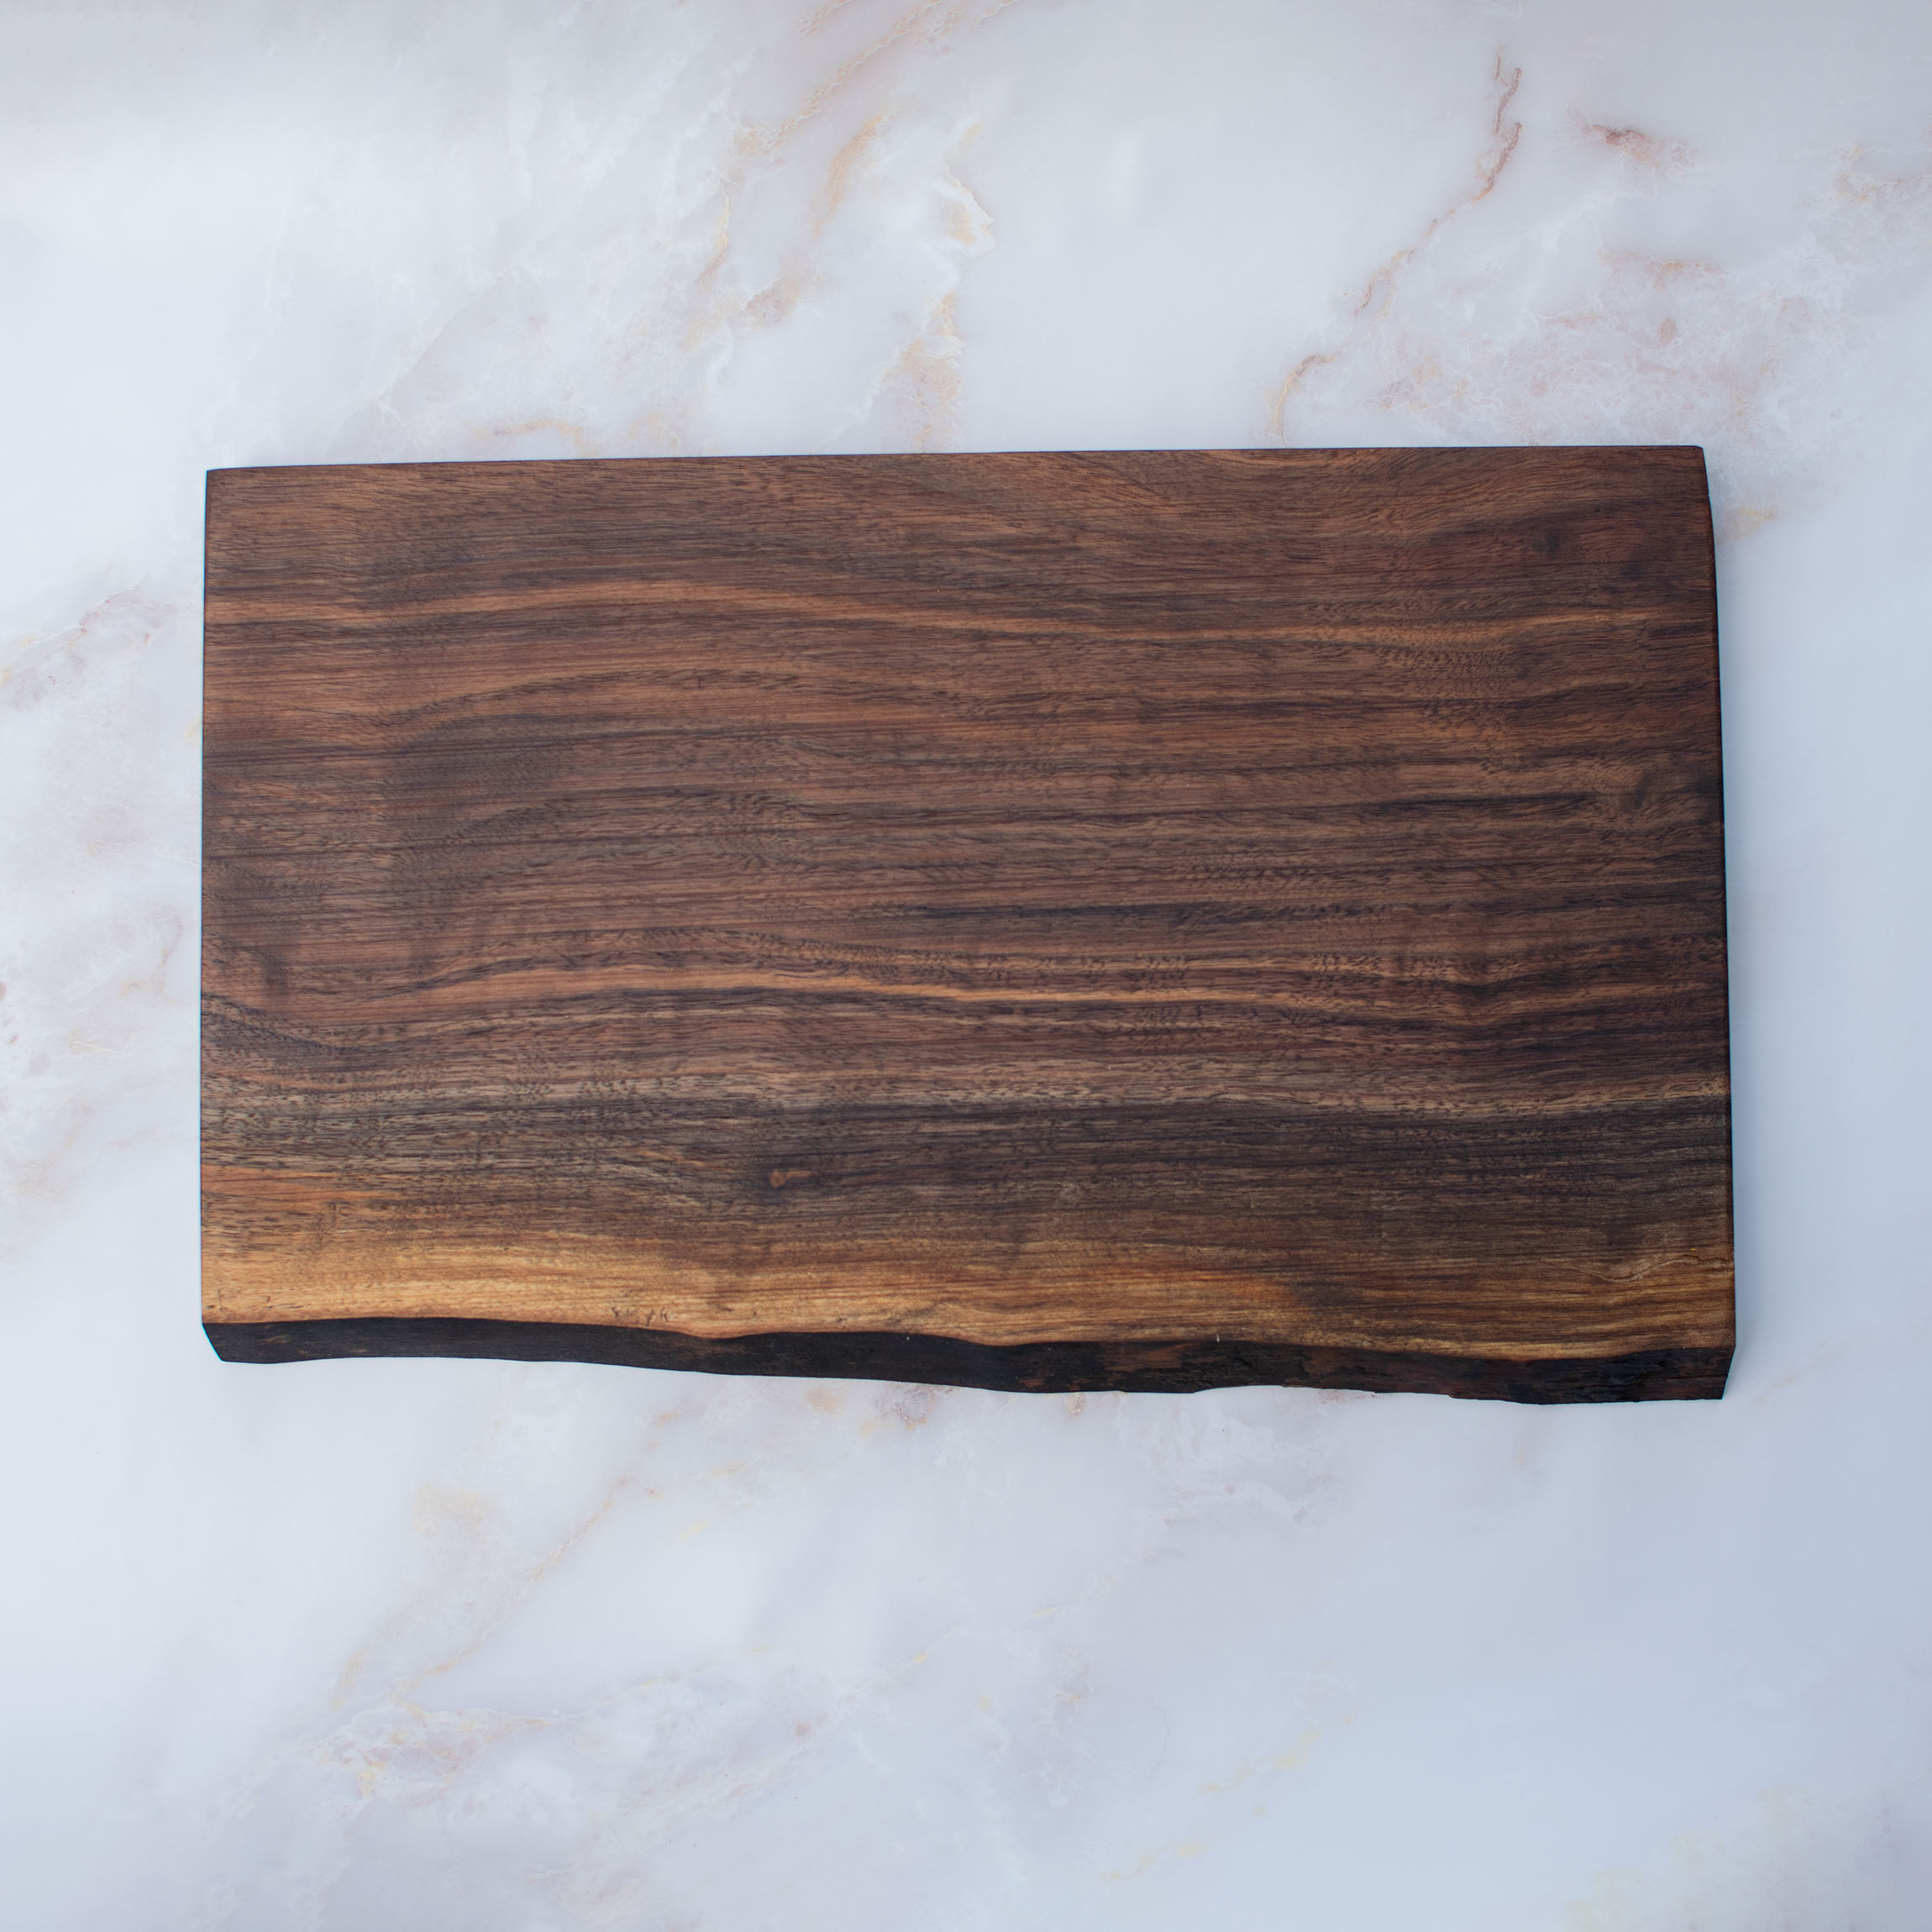 Cheese board on marble. dark natural wood